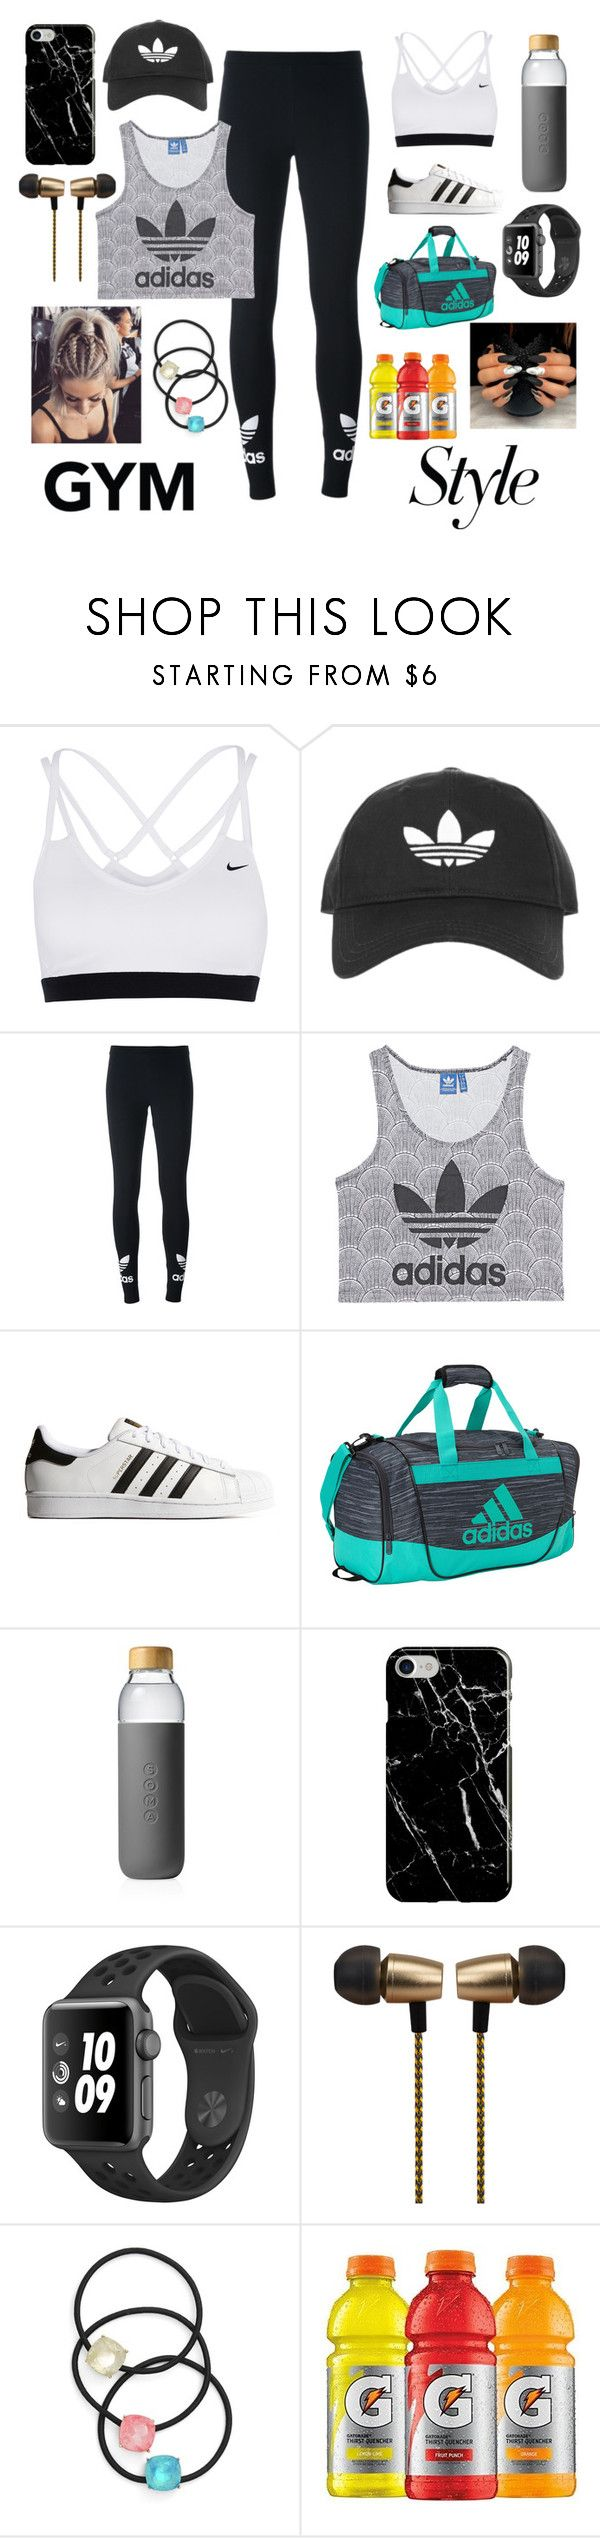 """""""Workout Hour"""" by sofiagarcia-27 ❤ liked on Polyvore featuring NIKE, Topshop, adidas Originals, adidas, Soma, Recover, Cynthia Rowley and Cara"""